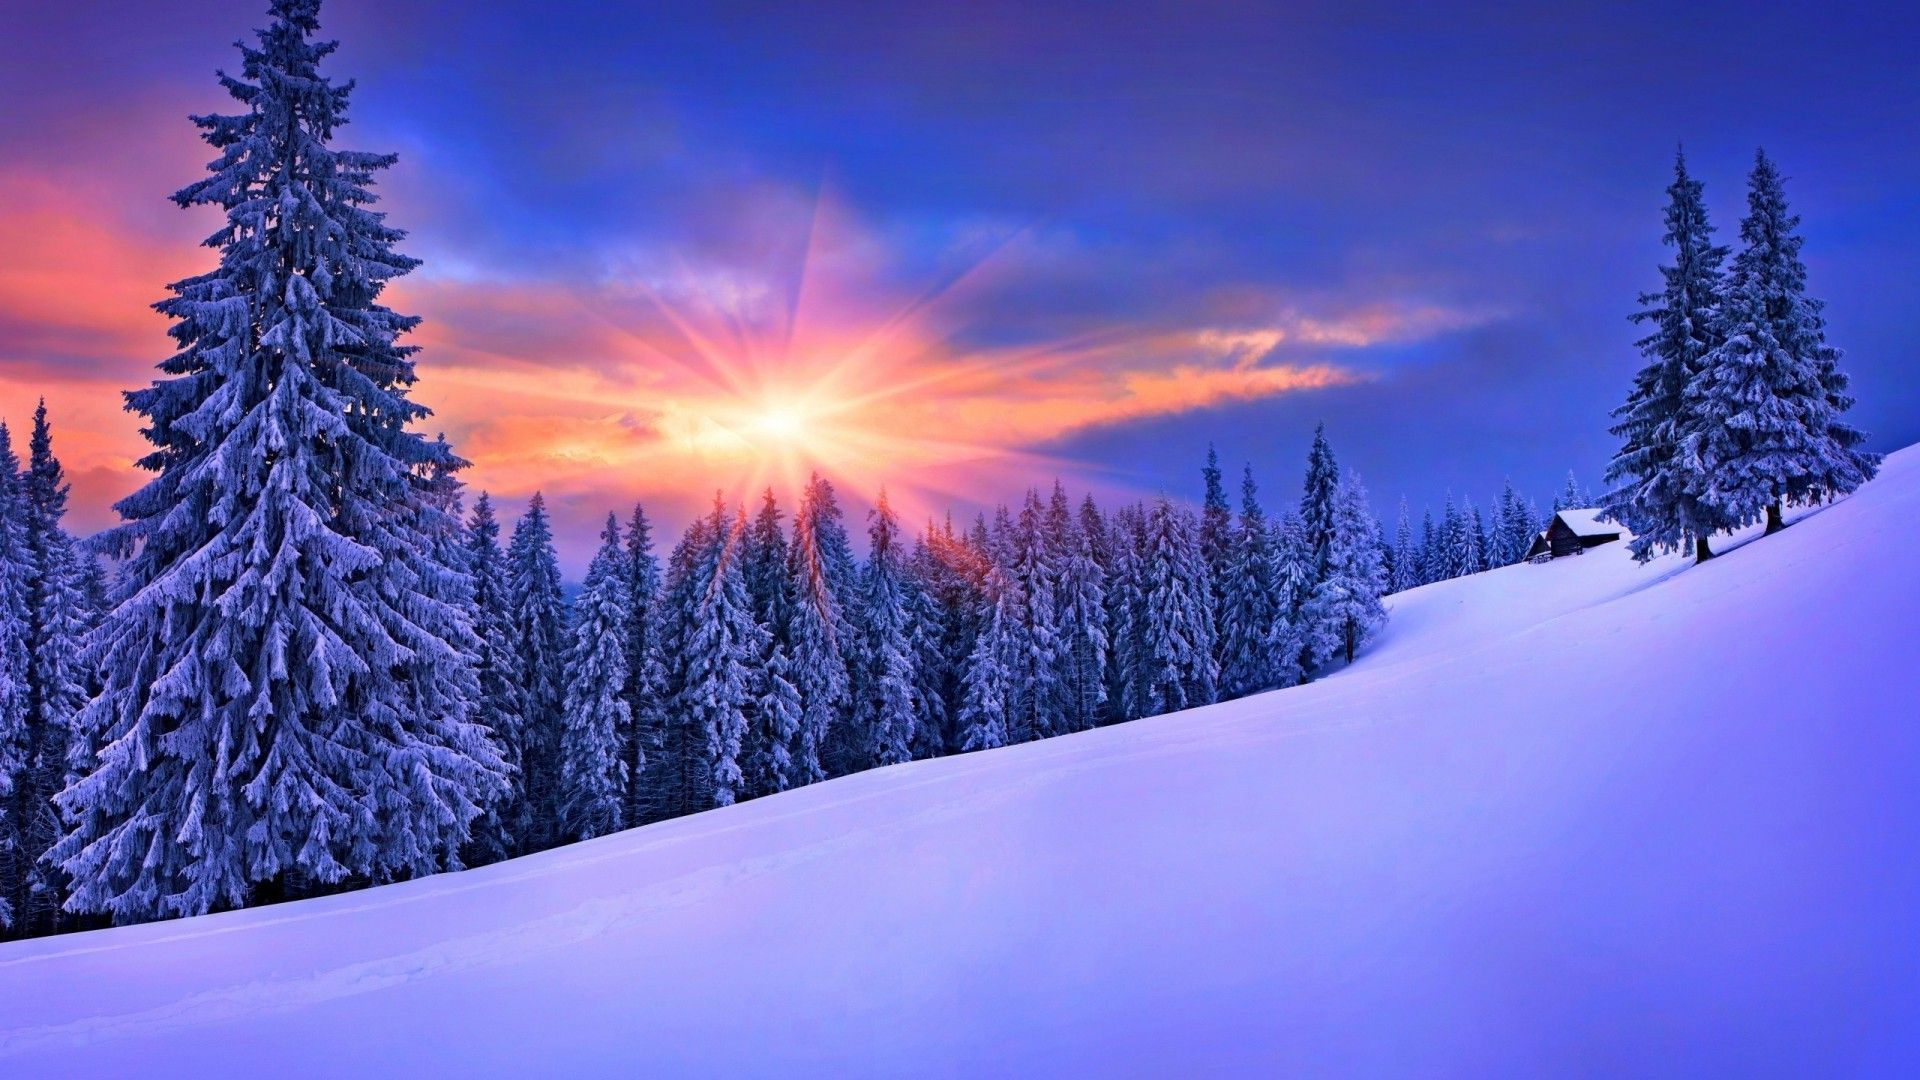 Winter Nature Wallpapers Top Free Winter Nature Backgrounds Wallpaperaccess Landscape Wallpaper Winter Desktop Background Scenery Wallpaper